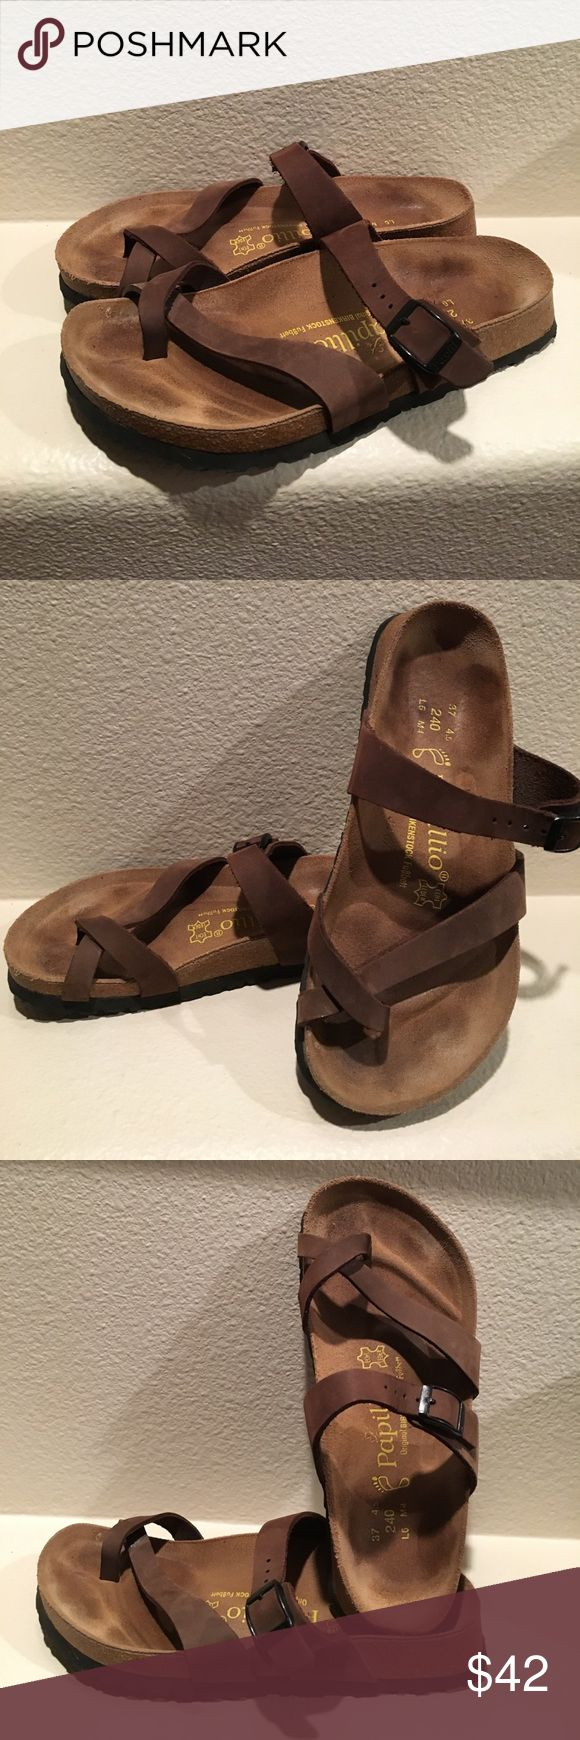 Birkenstock sandals Papillio sandals by Birkenstock. Cute & comfy toe ring style with one adjustable buckle. A nice neutral light brown color. I've worn these a handful of times and they always felt too small - they are size 37. Birkenstock Shoes Sandals